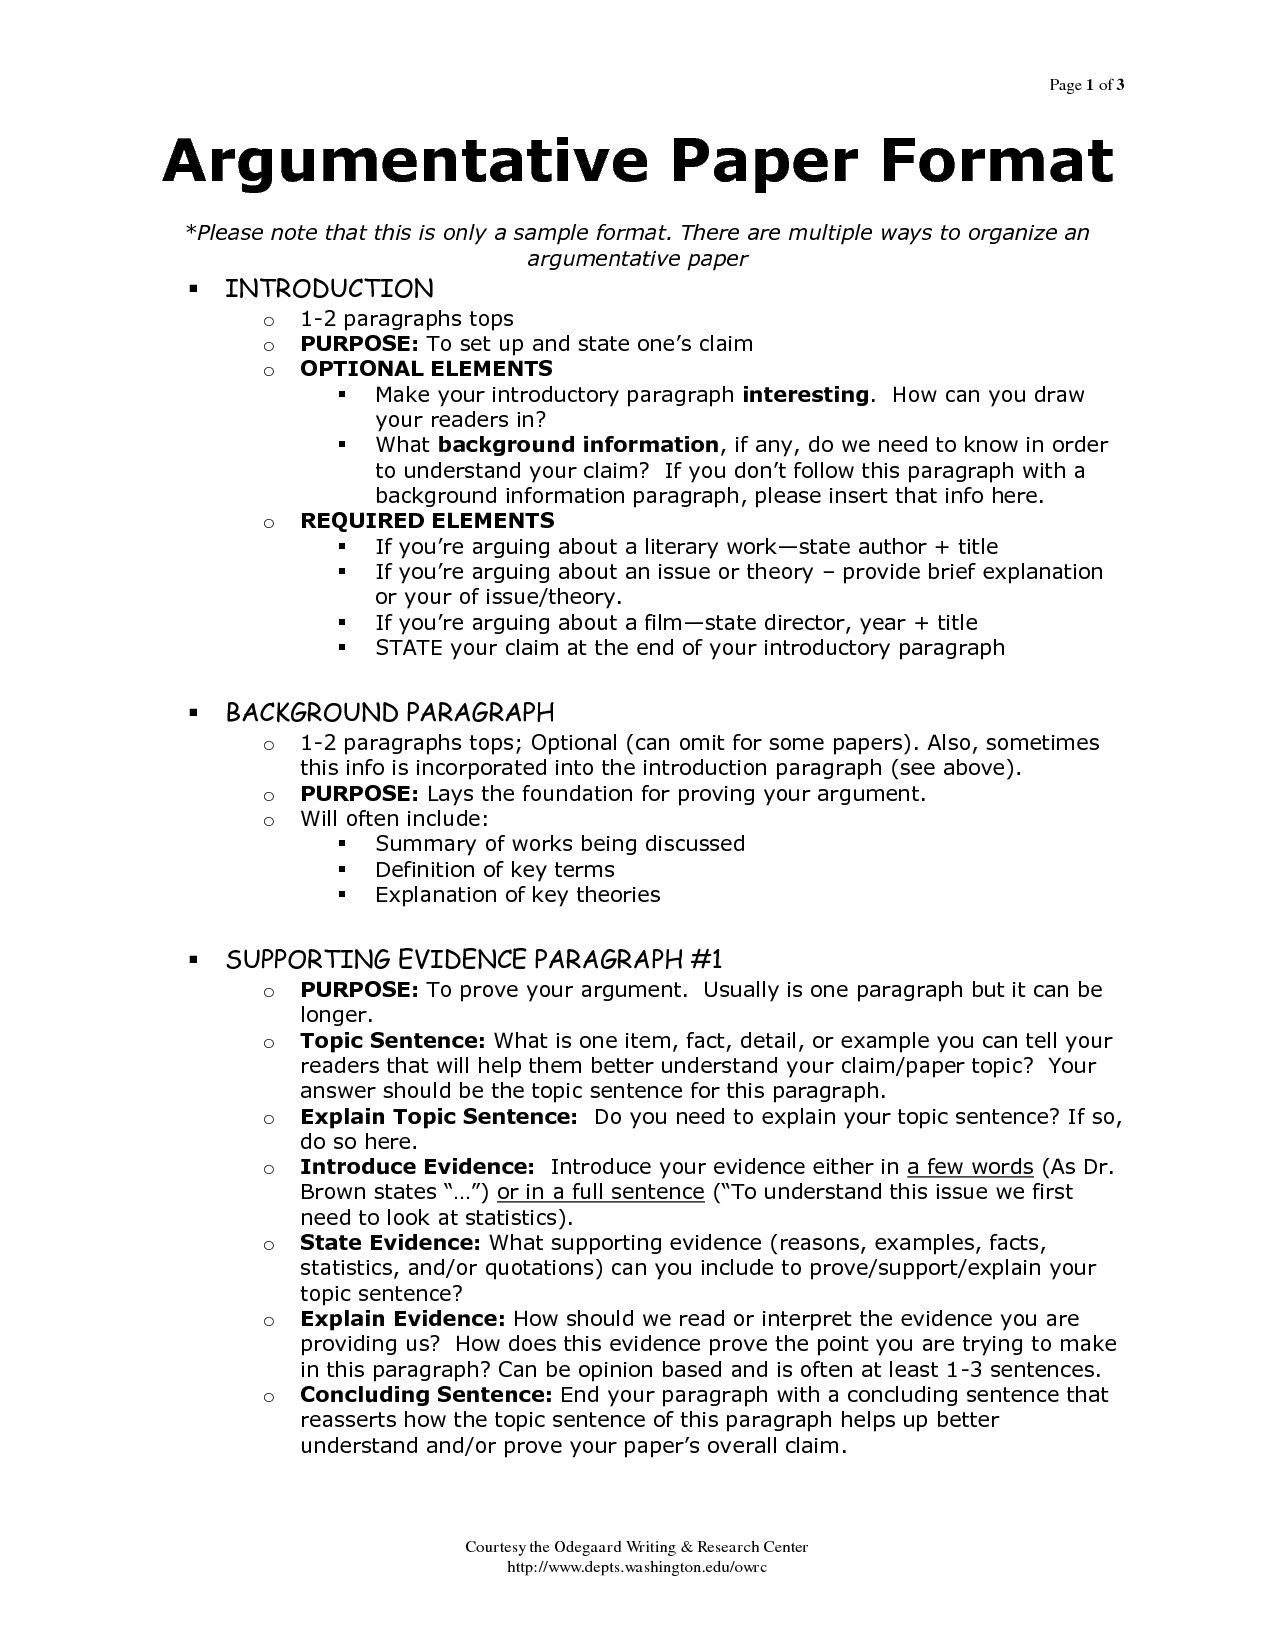 004 Argumentative Essay Introductions Awesome Introduction Examples Middle School Format Full